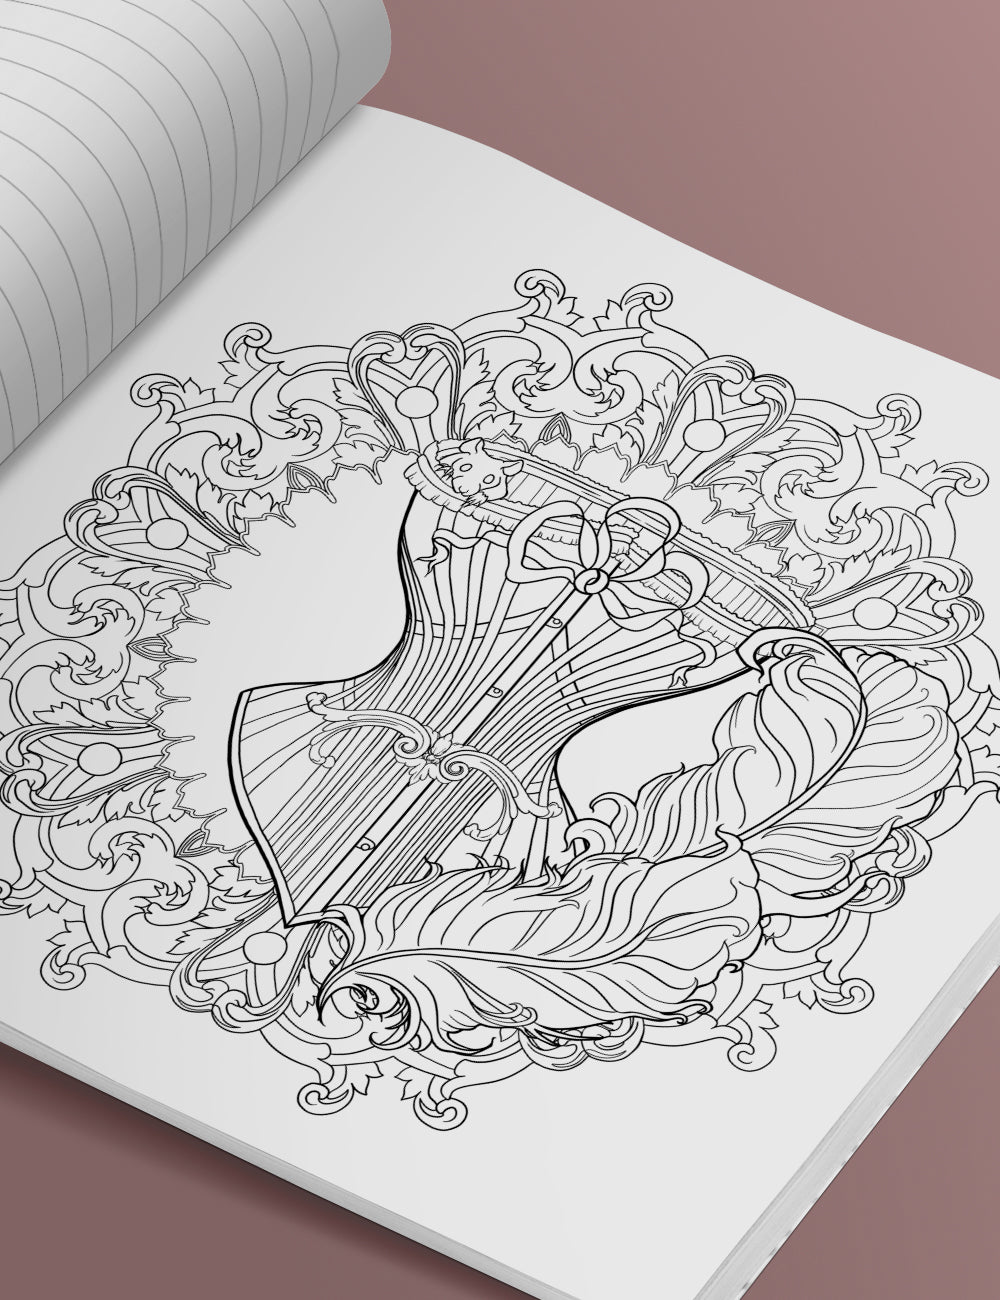 The Asylum Coloring Book Volume 1: Mandalas